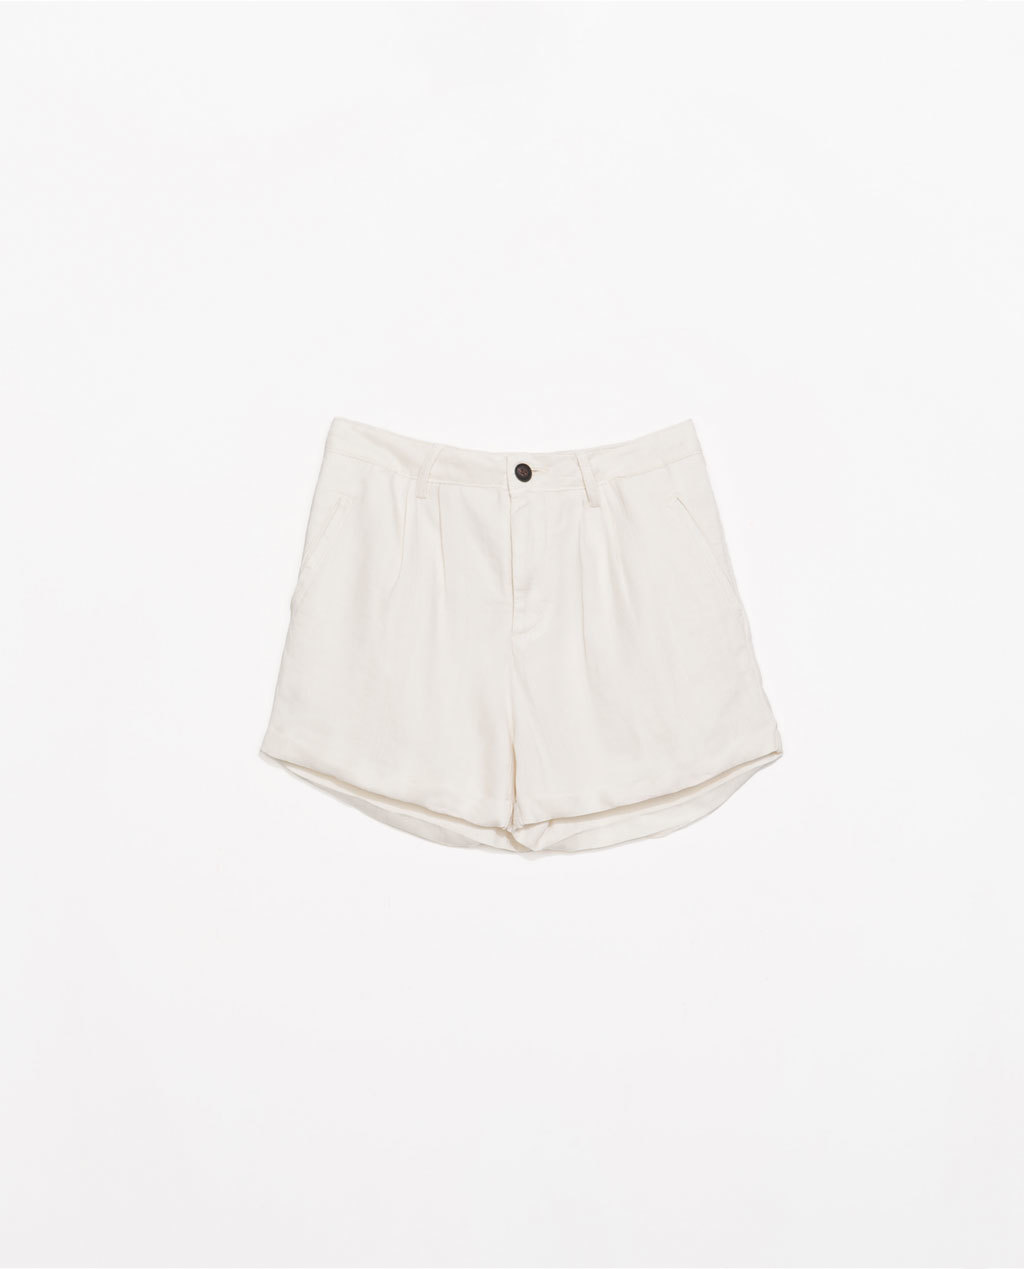 Jacquard Bermudas - pattern: plain; waist: mid/regular rise; predominant colour: ivory/cream; occasions: casual, holiday, creative work; fibres: linen - mix; pattern type: fabric; texture group: brocade/jacquard; season: s/s 2014; style: shorts; length: short shorts; fit: slim leg